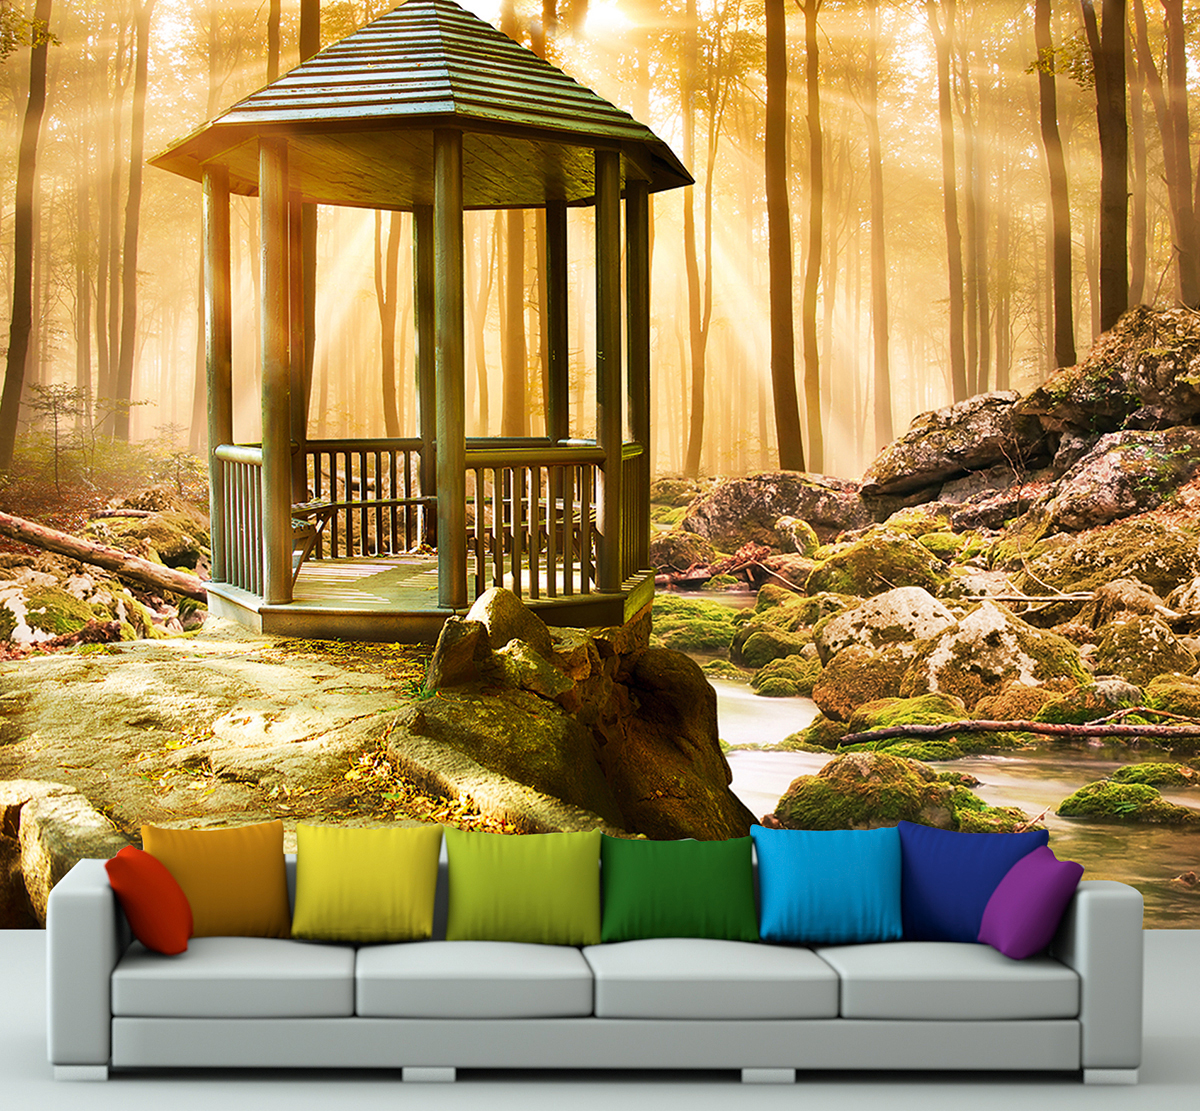 wandmotiv24 fototapete pavillon im wald tapete kunstdruck wandbild landschaft online bestellen. Black Bedroom Furniture Sets. Home Design Ideas